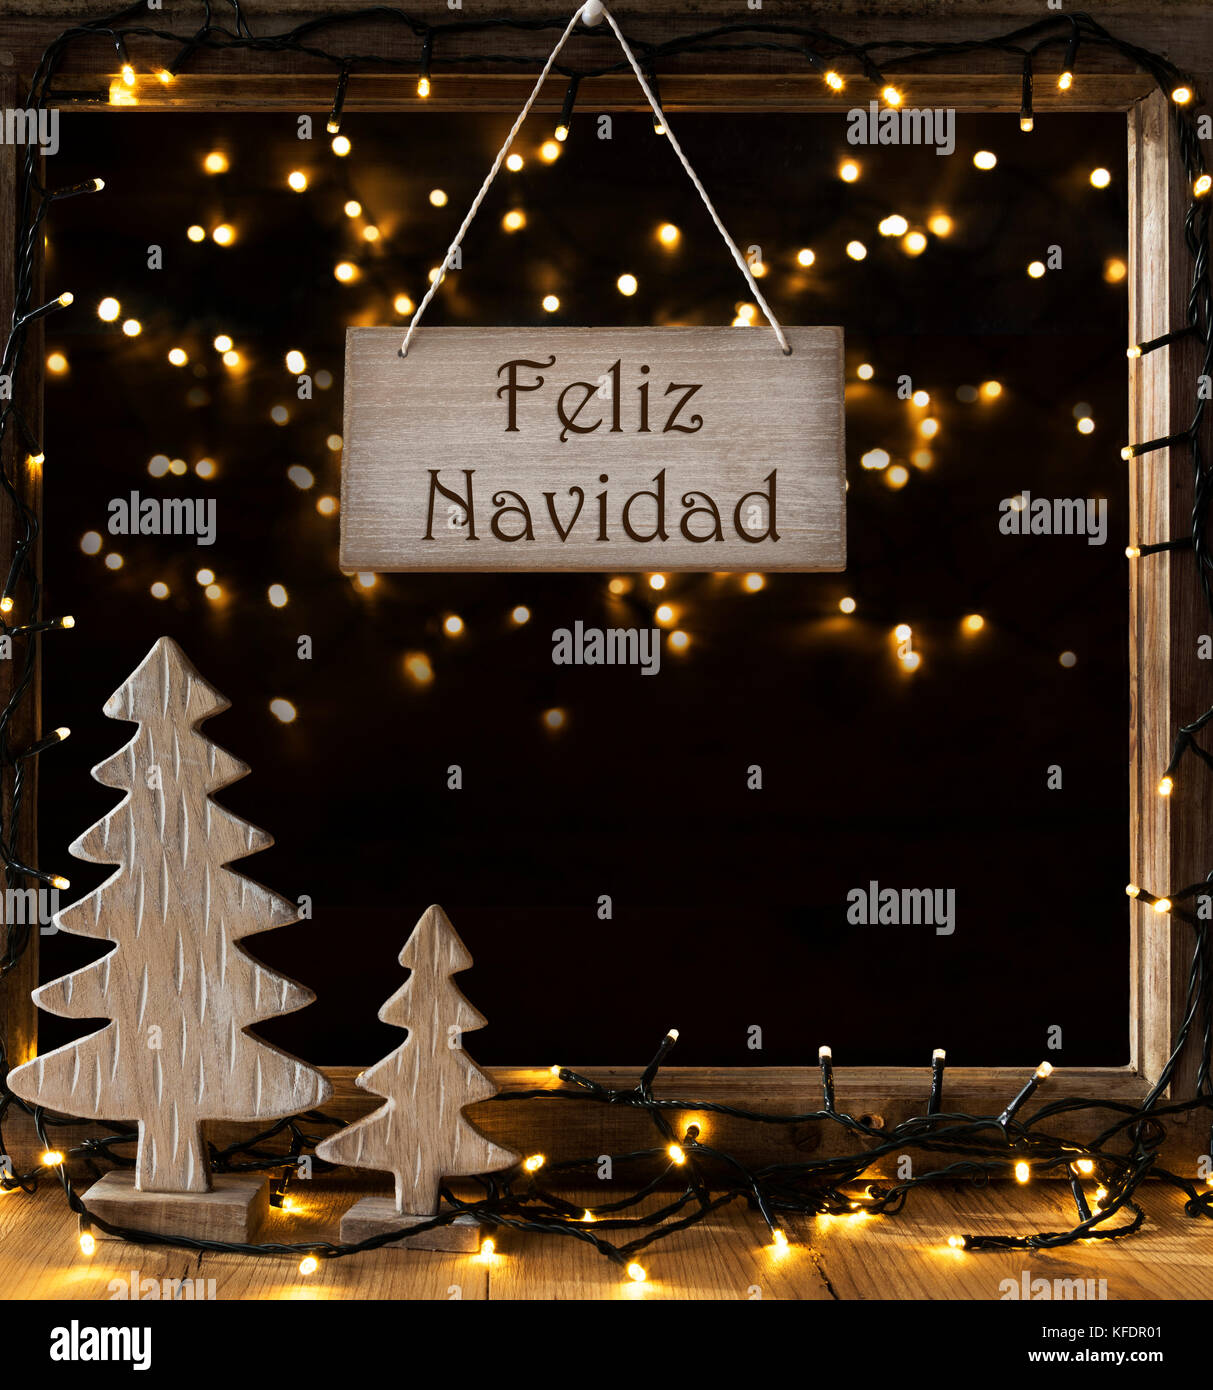 0896a067e8fe5 Sign With Spanish Text Feliz Navidad Means Merry Christmas. Window Frame  With Lights In The Night In Background. Christmas Decoration Like Christmas  T